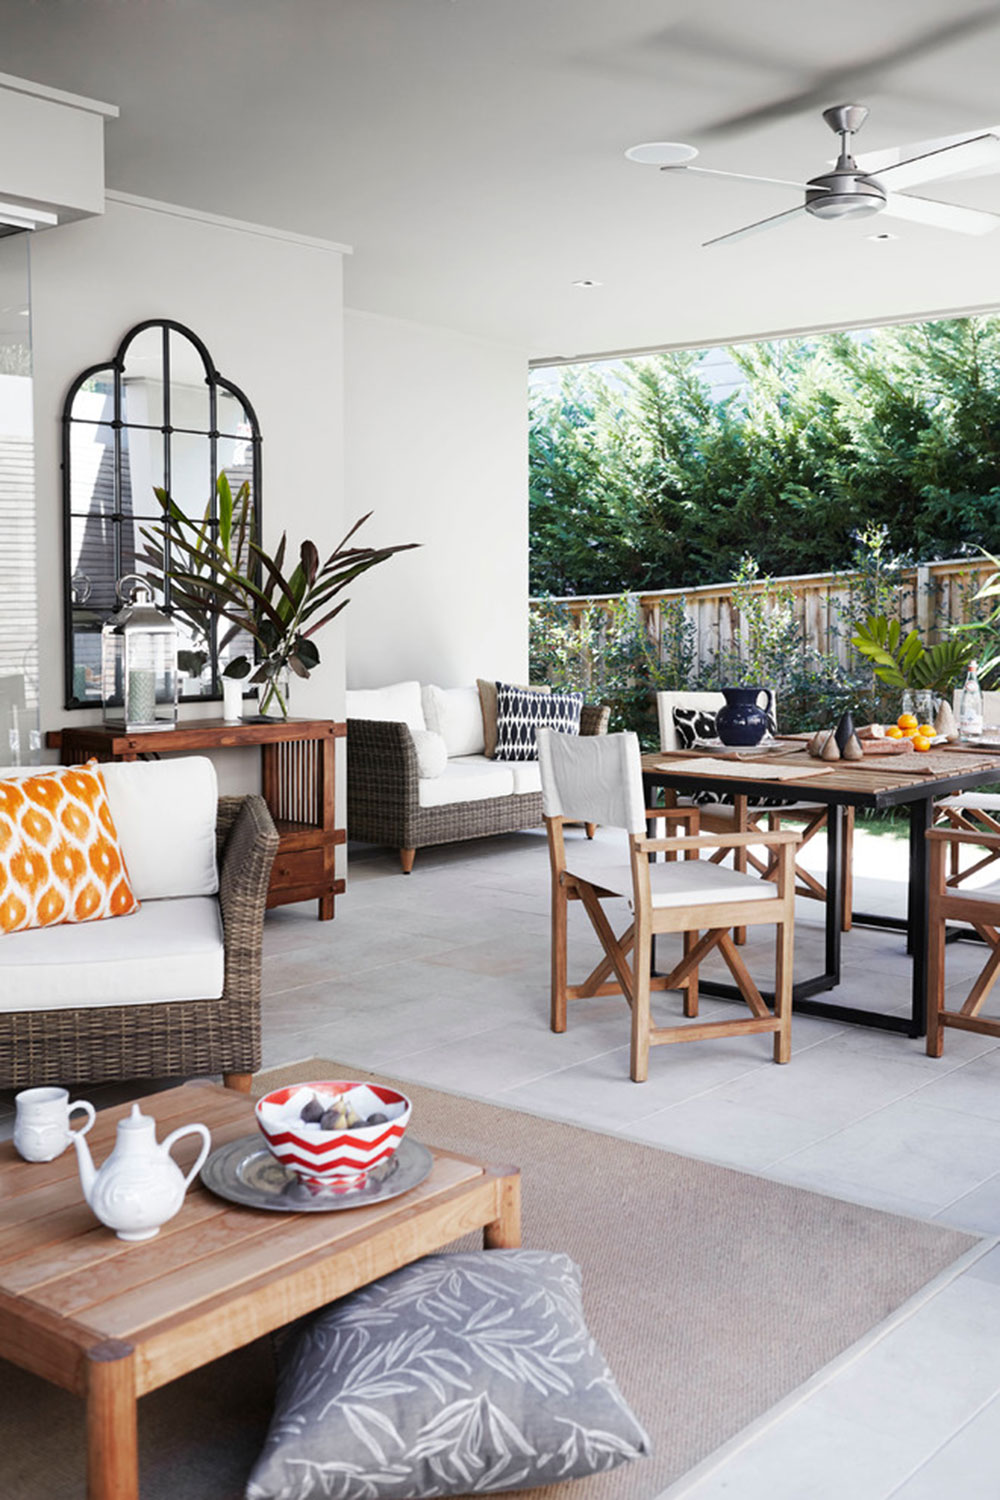 Outdoor-room-ideas-raising-the-family-together-9 outdoor-room-ideas that keep the family together